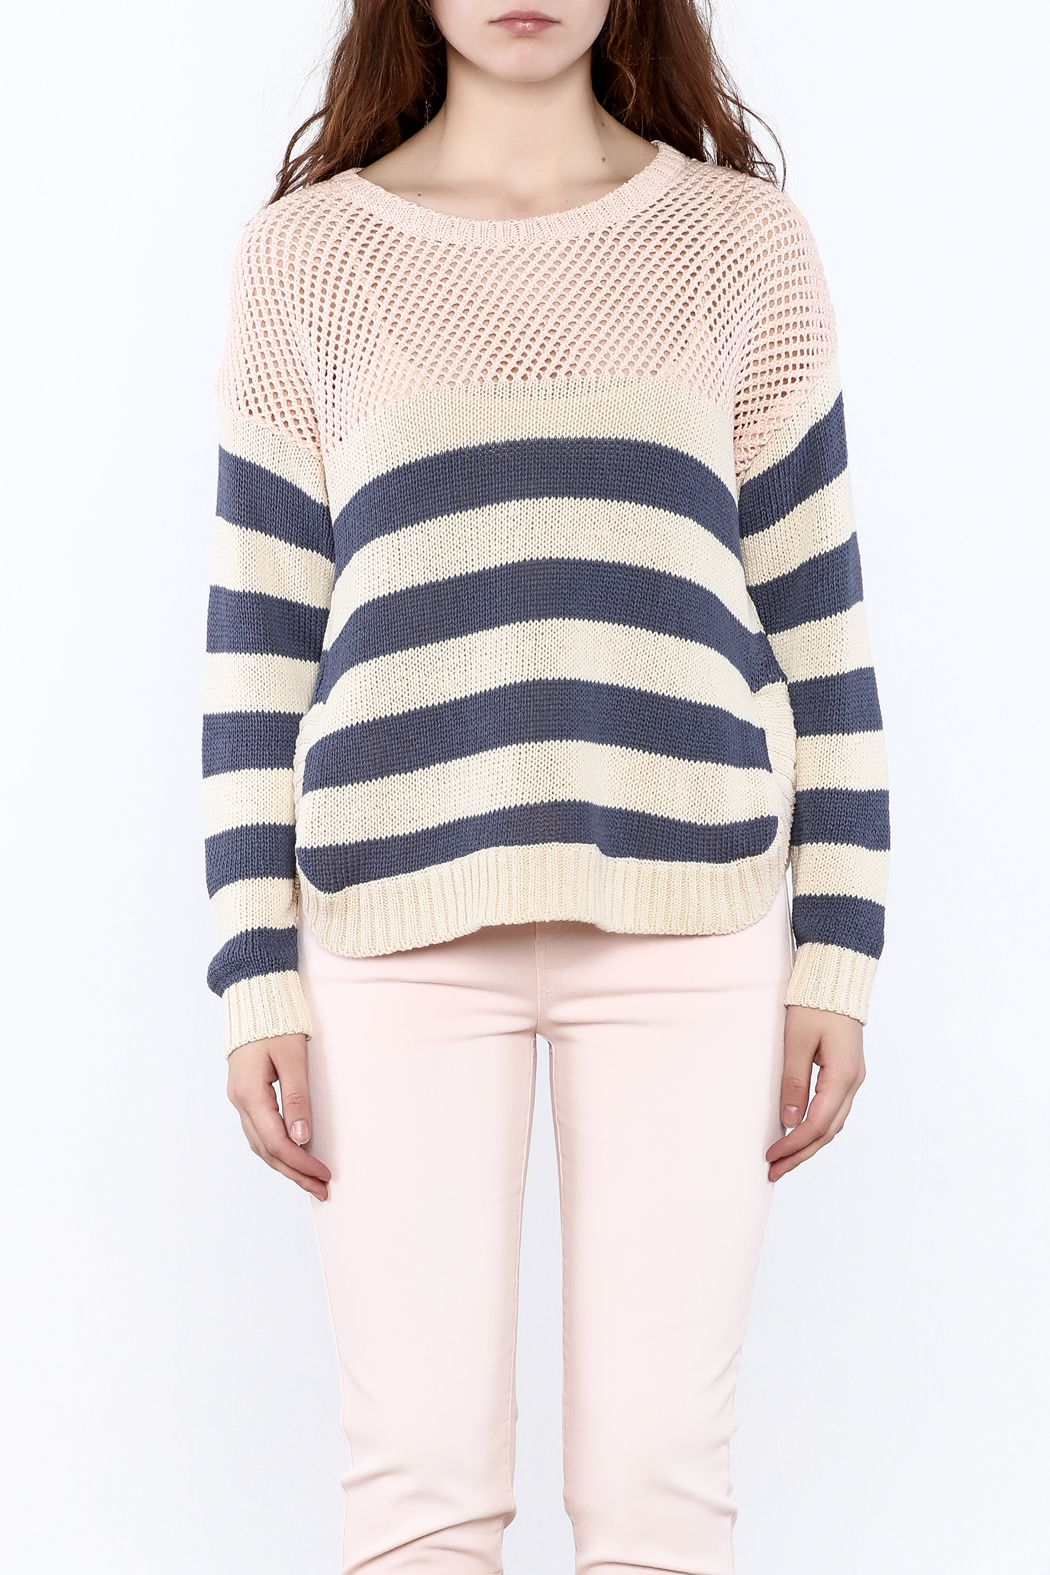 Weekend by Aldo Martins Summer Nautical Sweater - Side Cropped Image